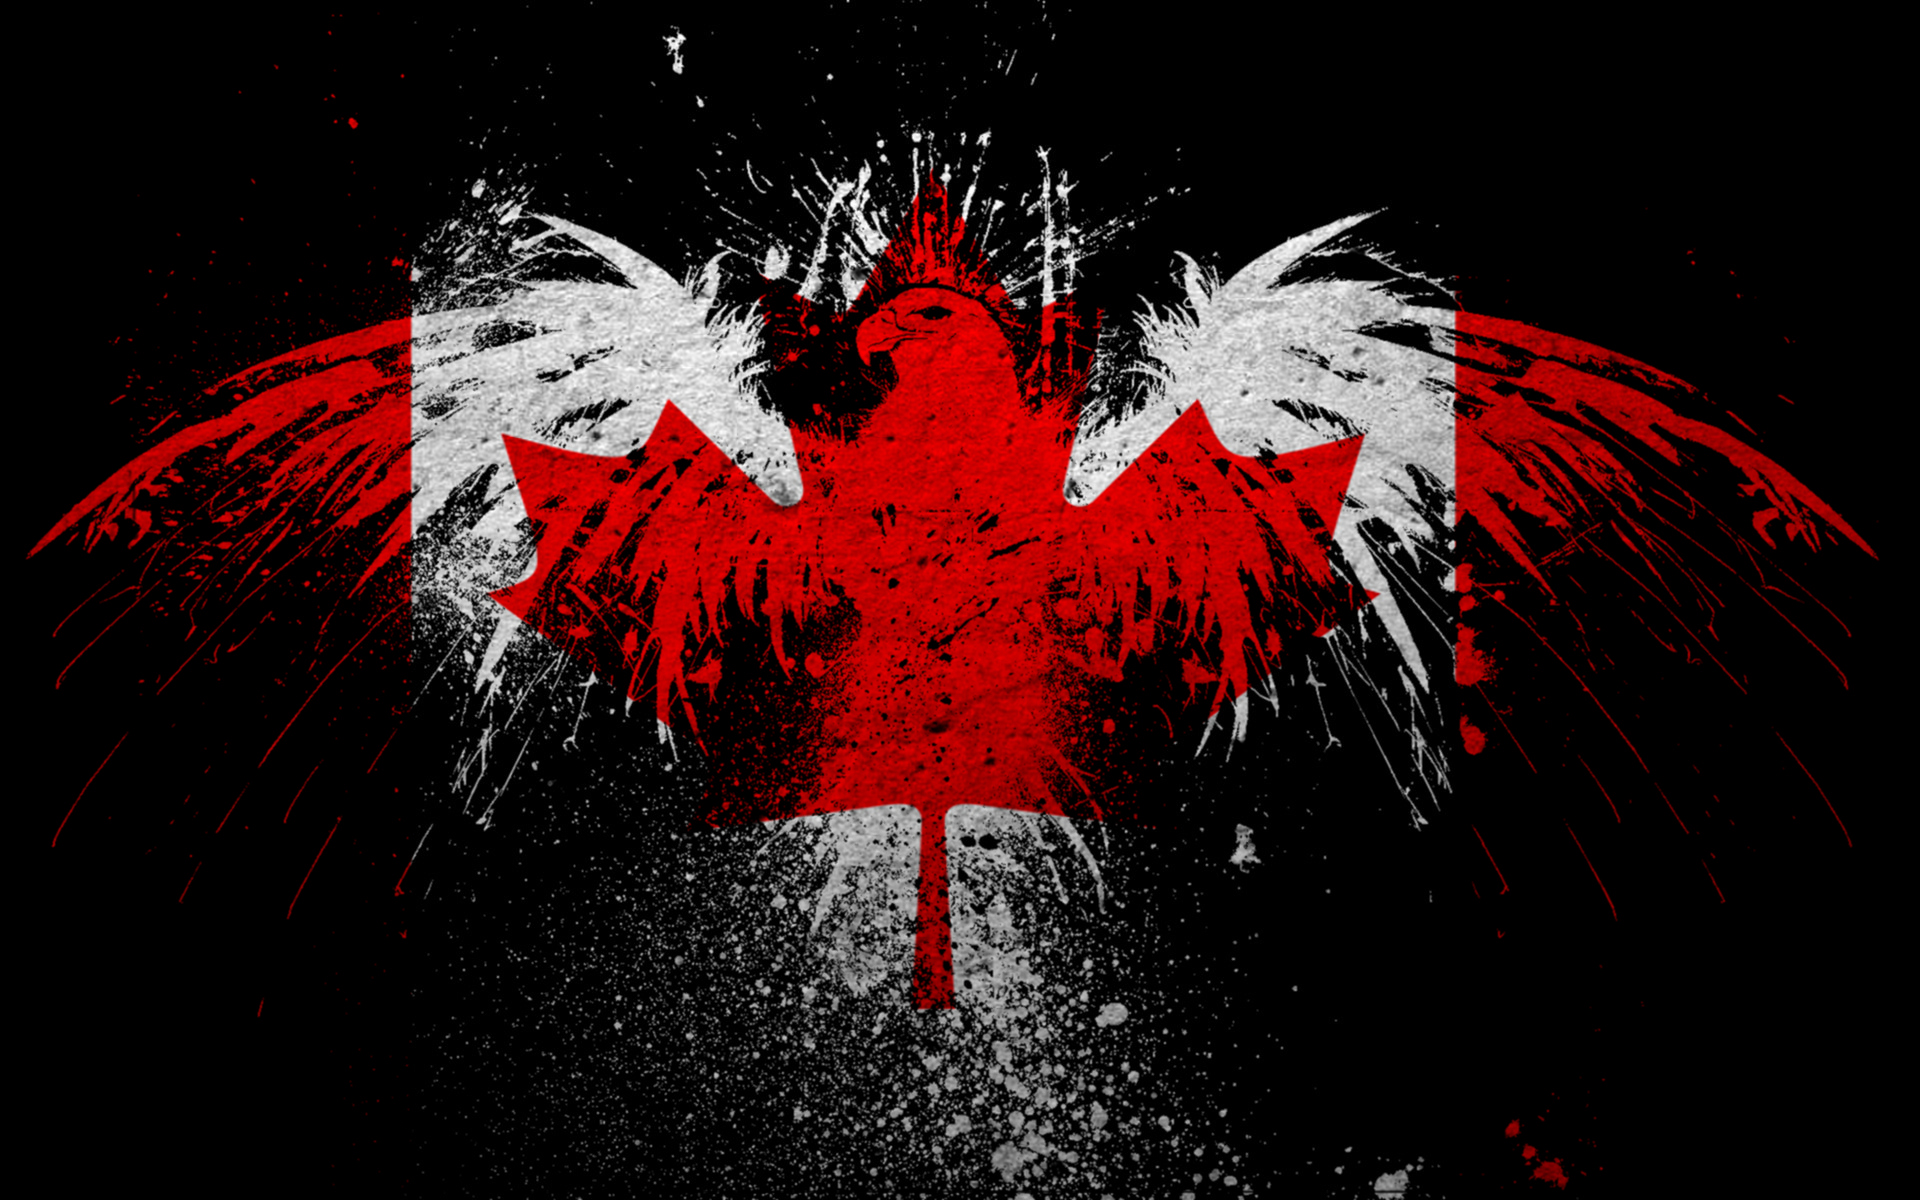 Most beautiful canadian flag wallpaper full hd pictures - Canada flag wallpaper hd for iphone ...